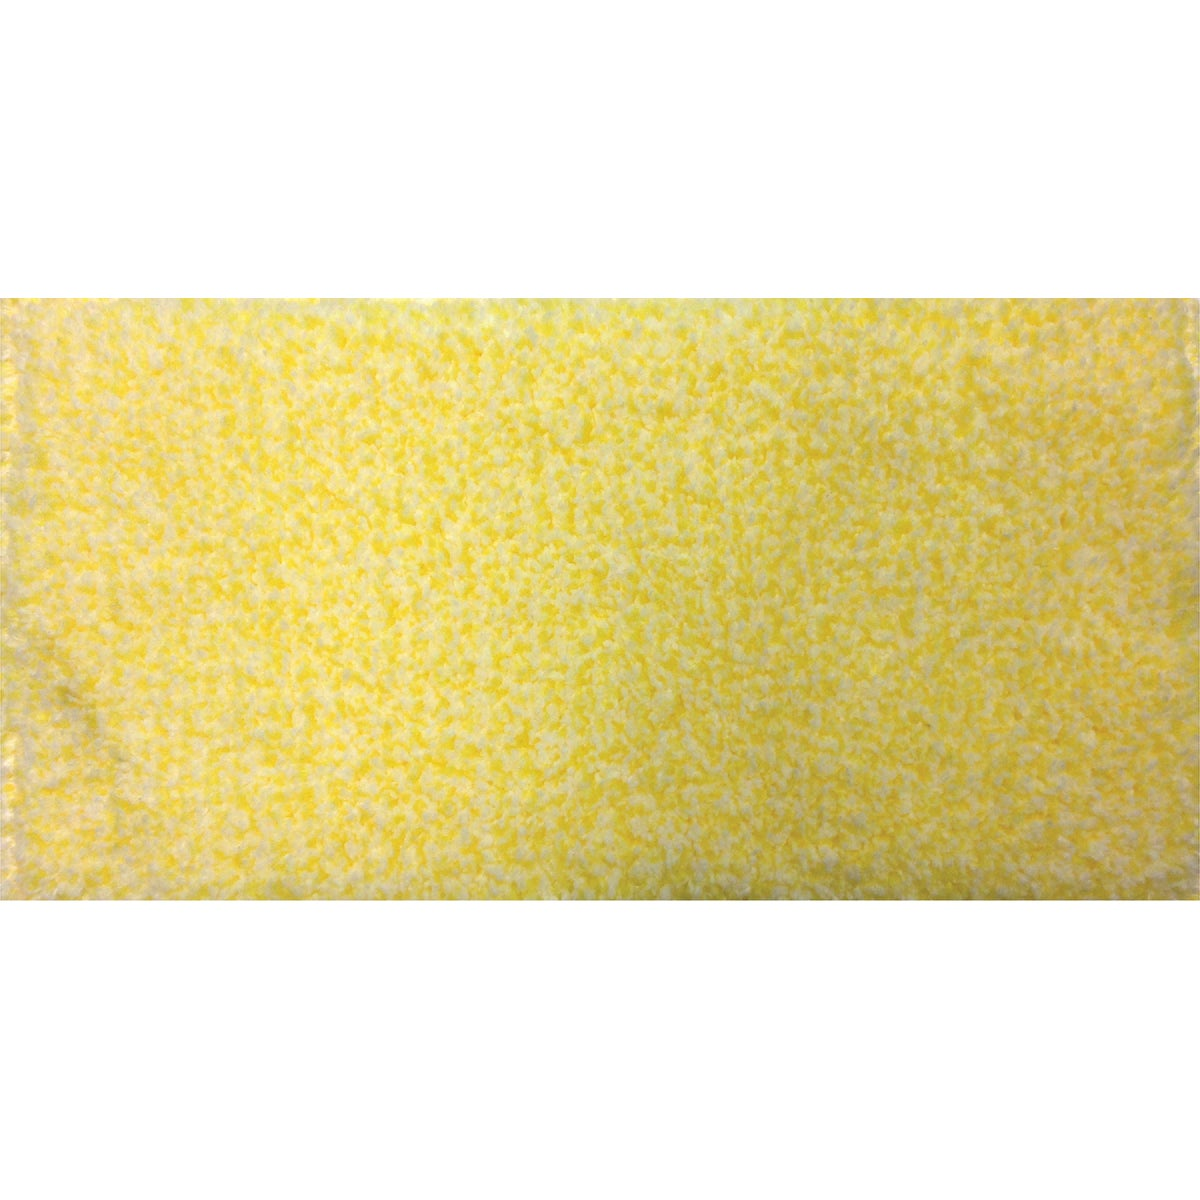 """7"""" FLOOR APPLICTR REFILL - 33307 by Ettore Products Co"""